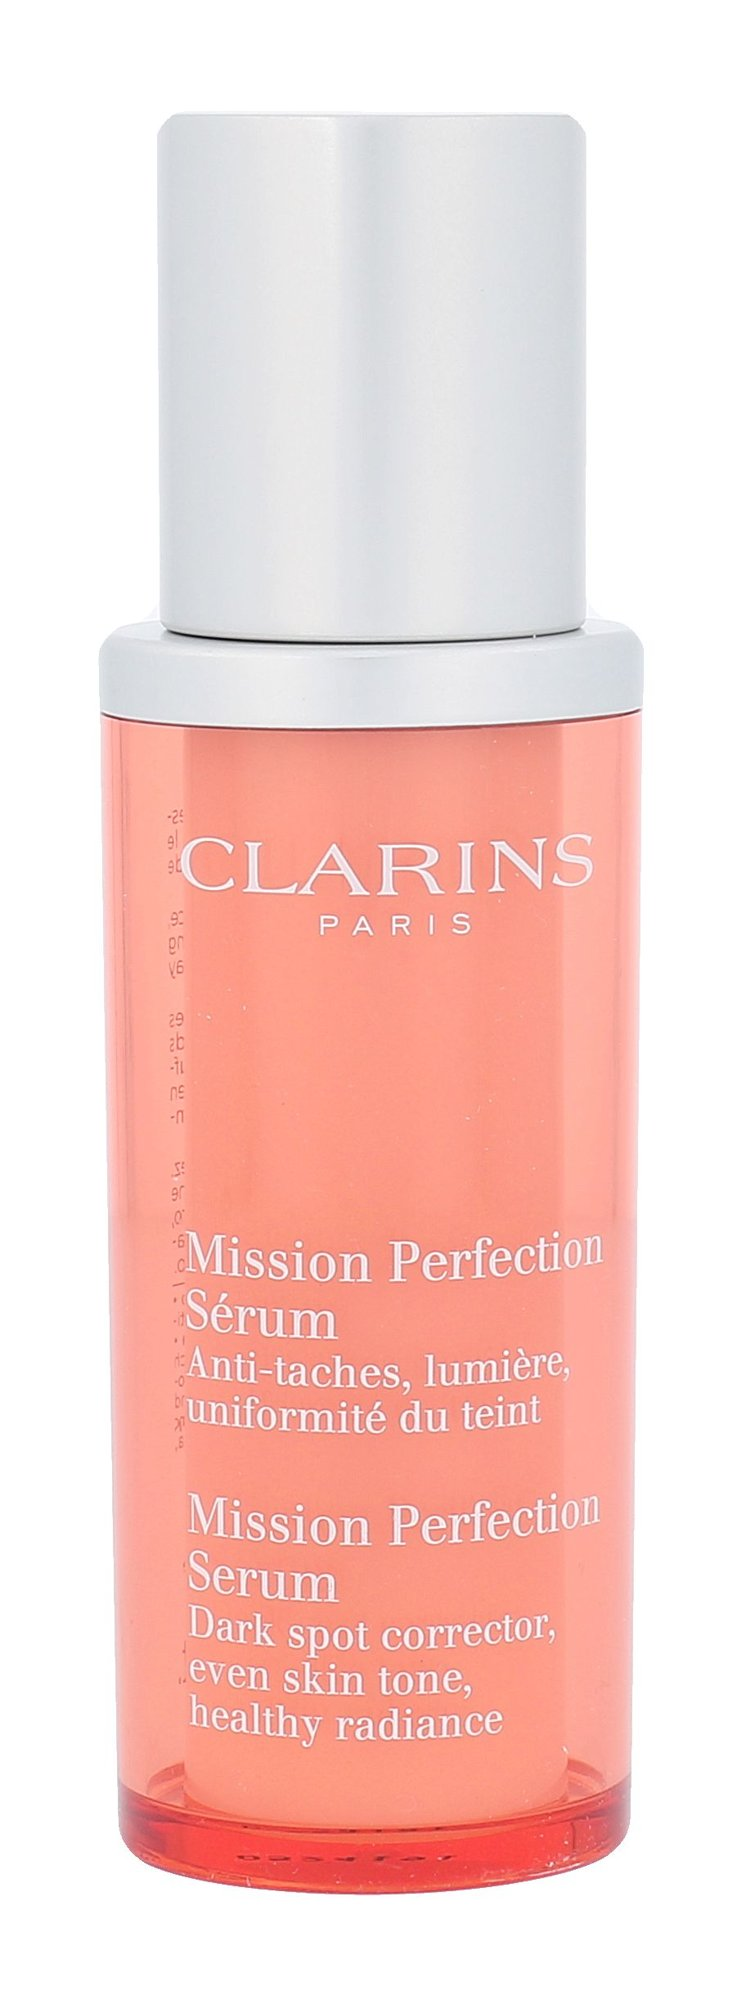 Clarins Mission Perfection Cosmetic 30ml